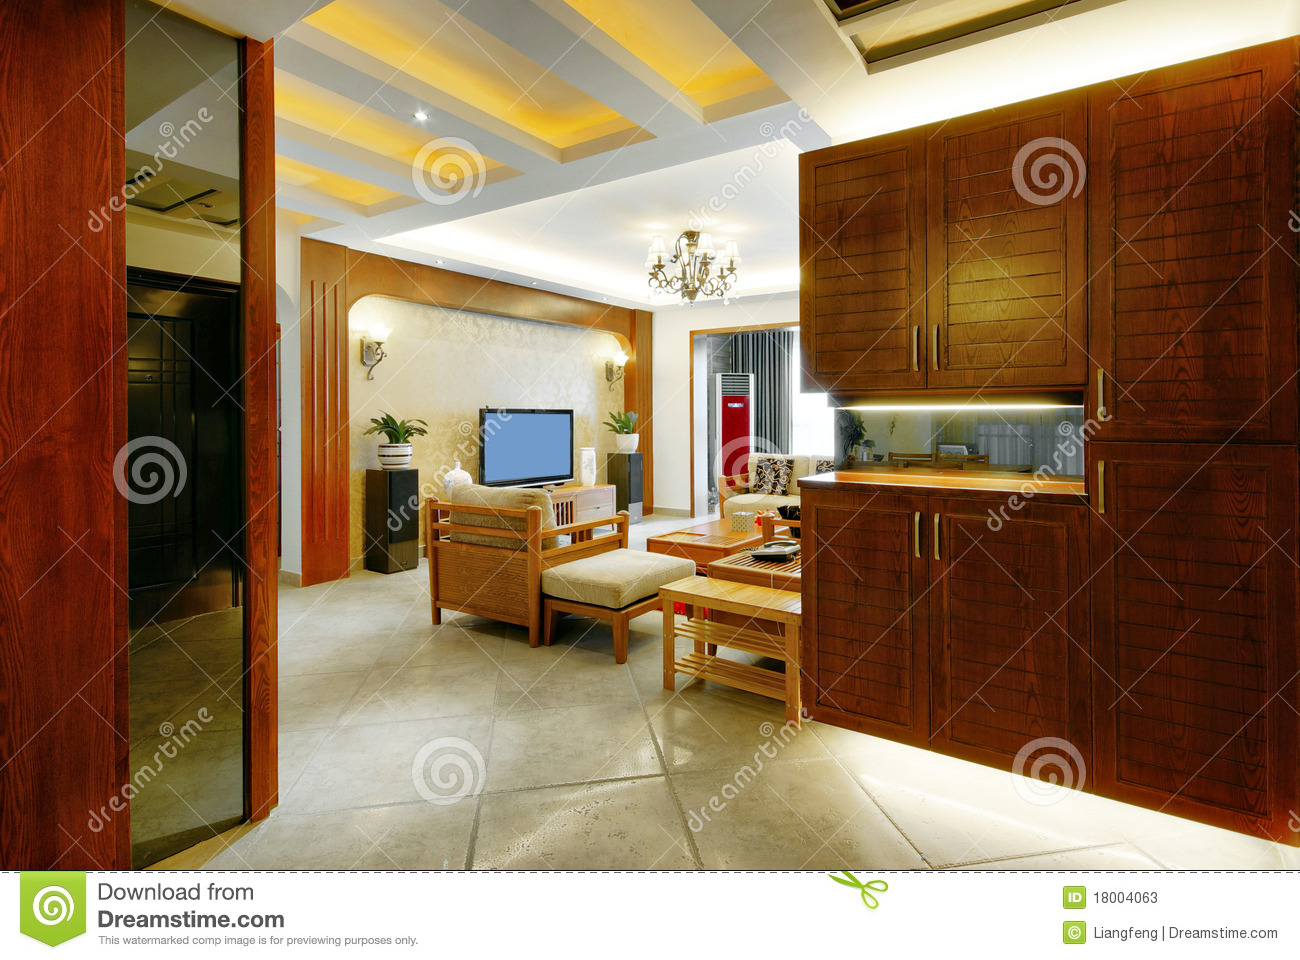 Beautiful home decor stock image image of layout home for Beautiful home decorations